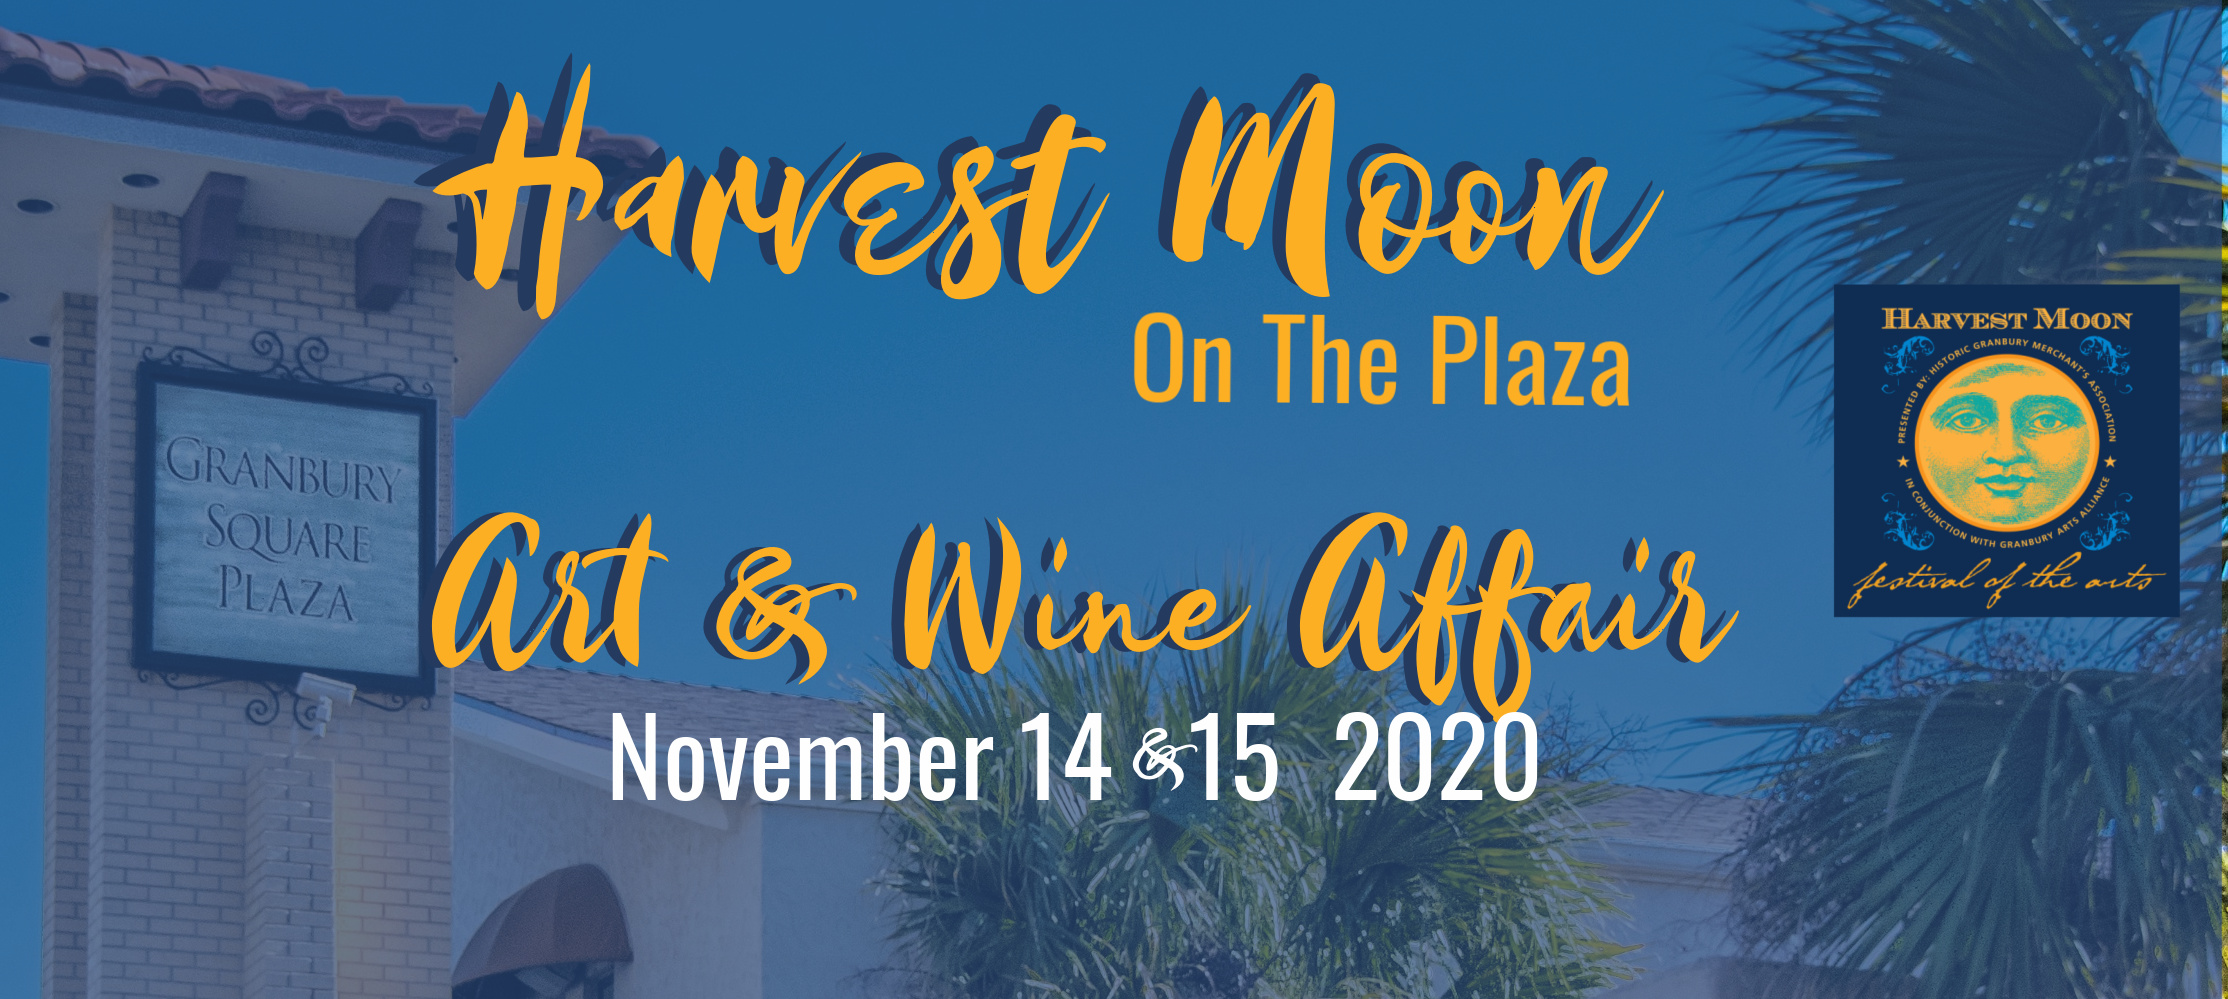 Harvest Moon on the Plaza Art & Wine Affair @ Granbury Square Plaza